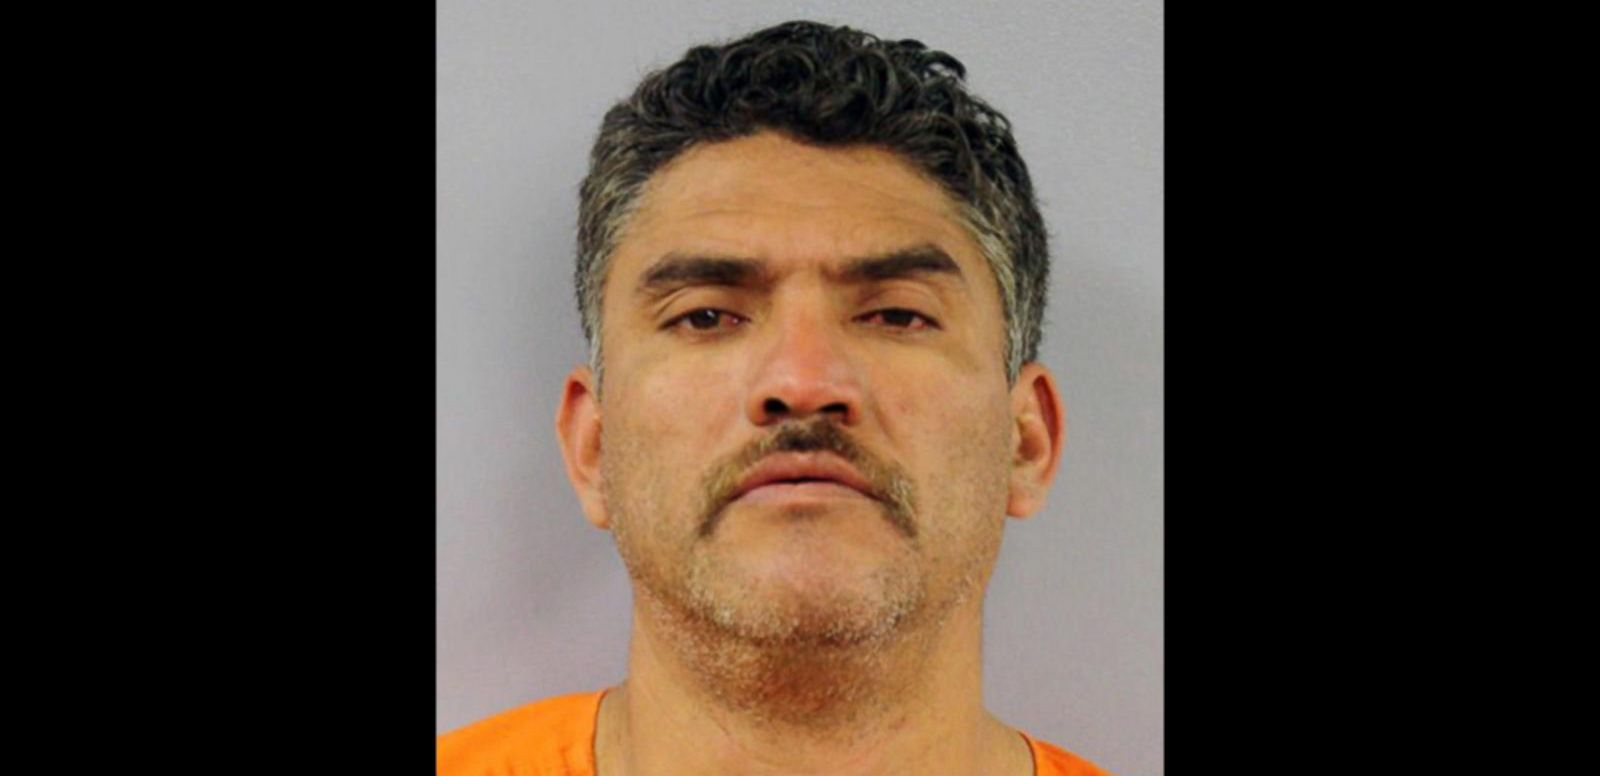 VIDEO: Mexican National Suspected in a Murder Spree That Left 5 Dead Was Supposed to Be Deported